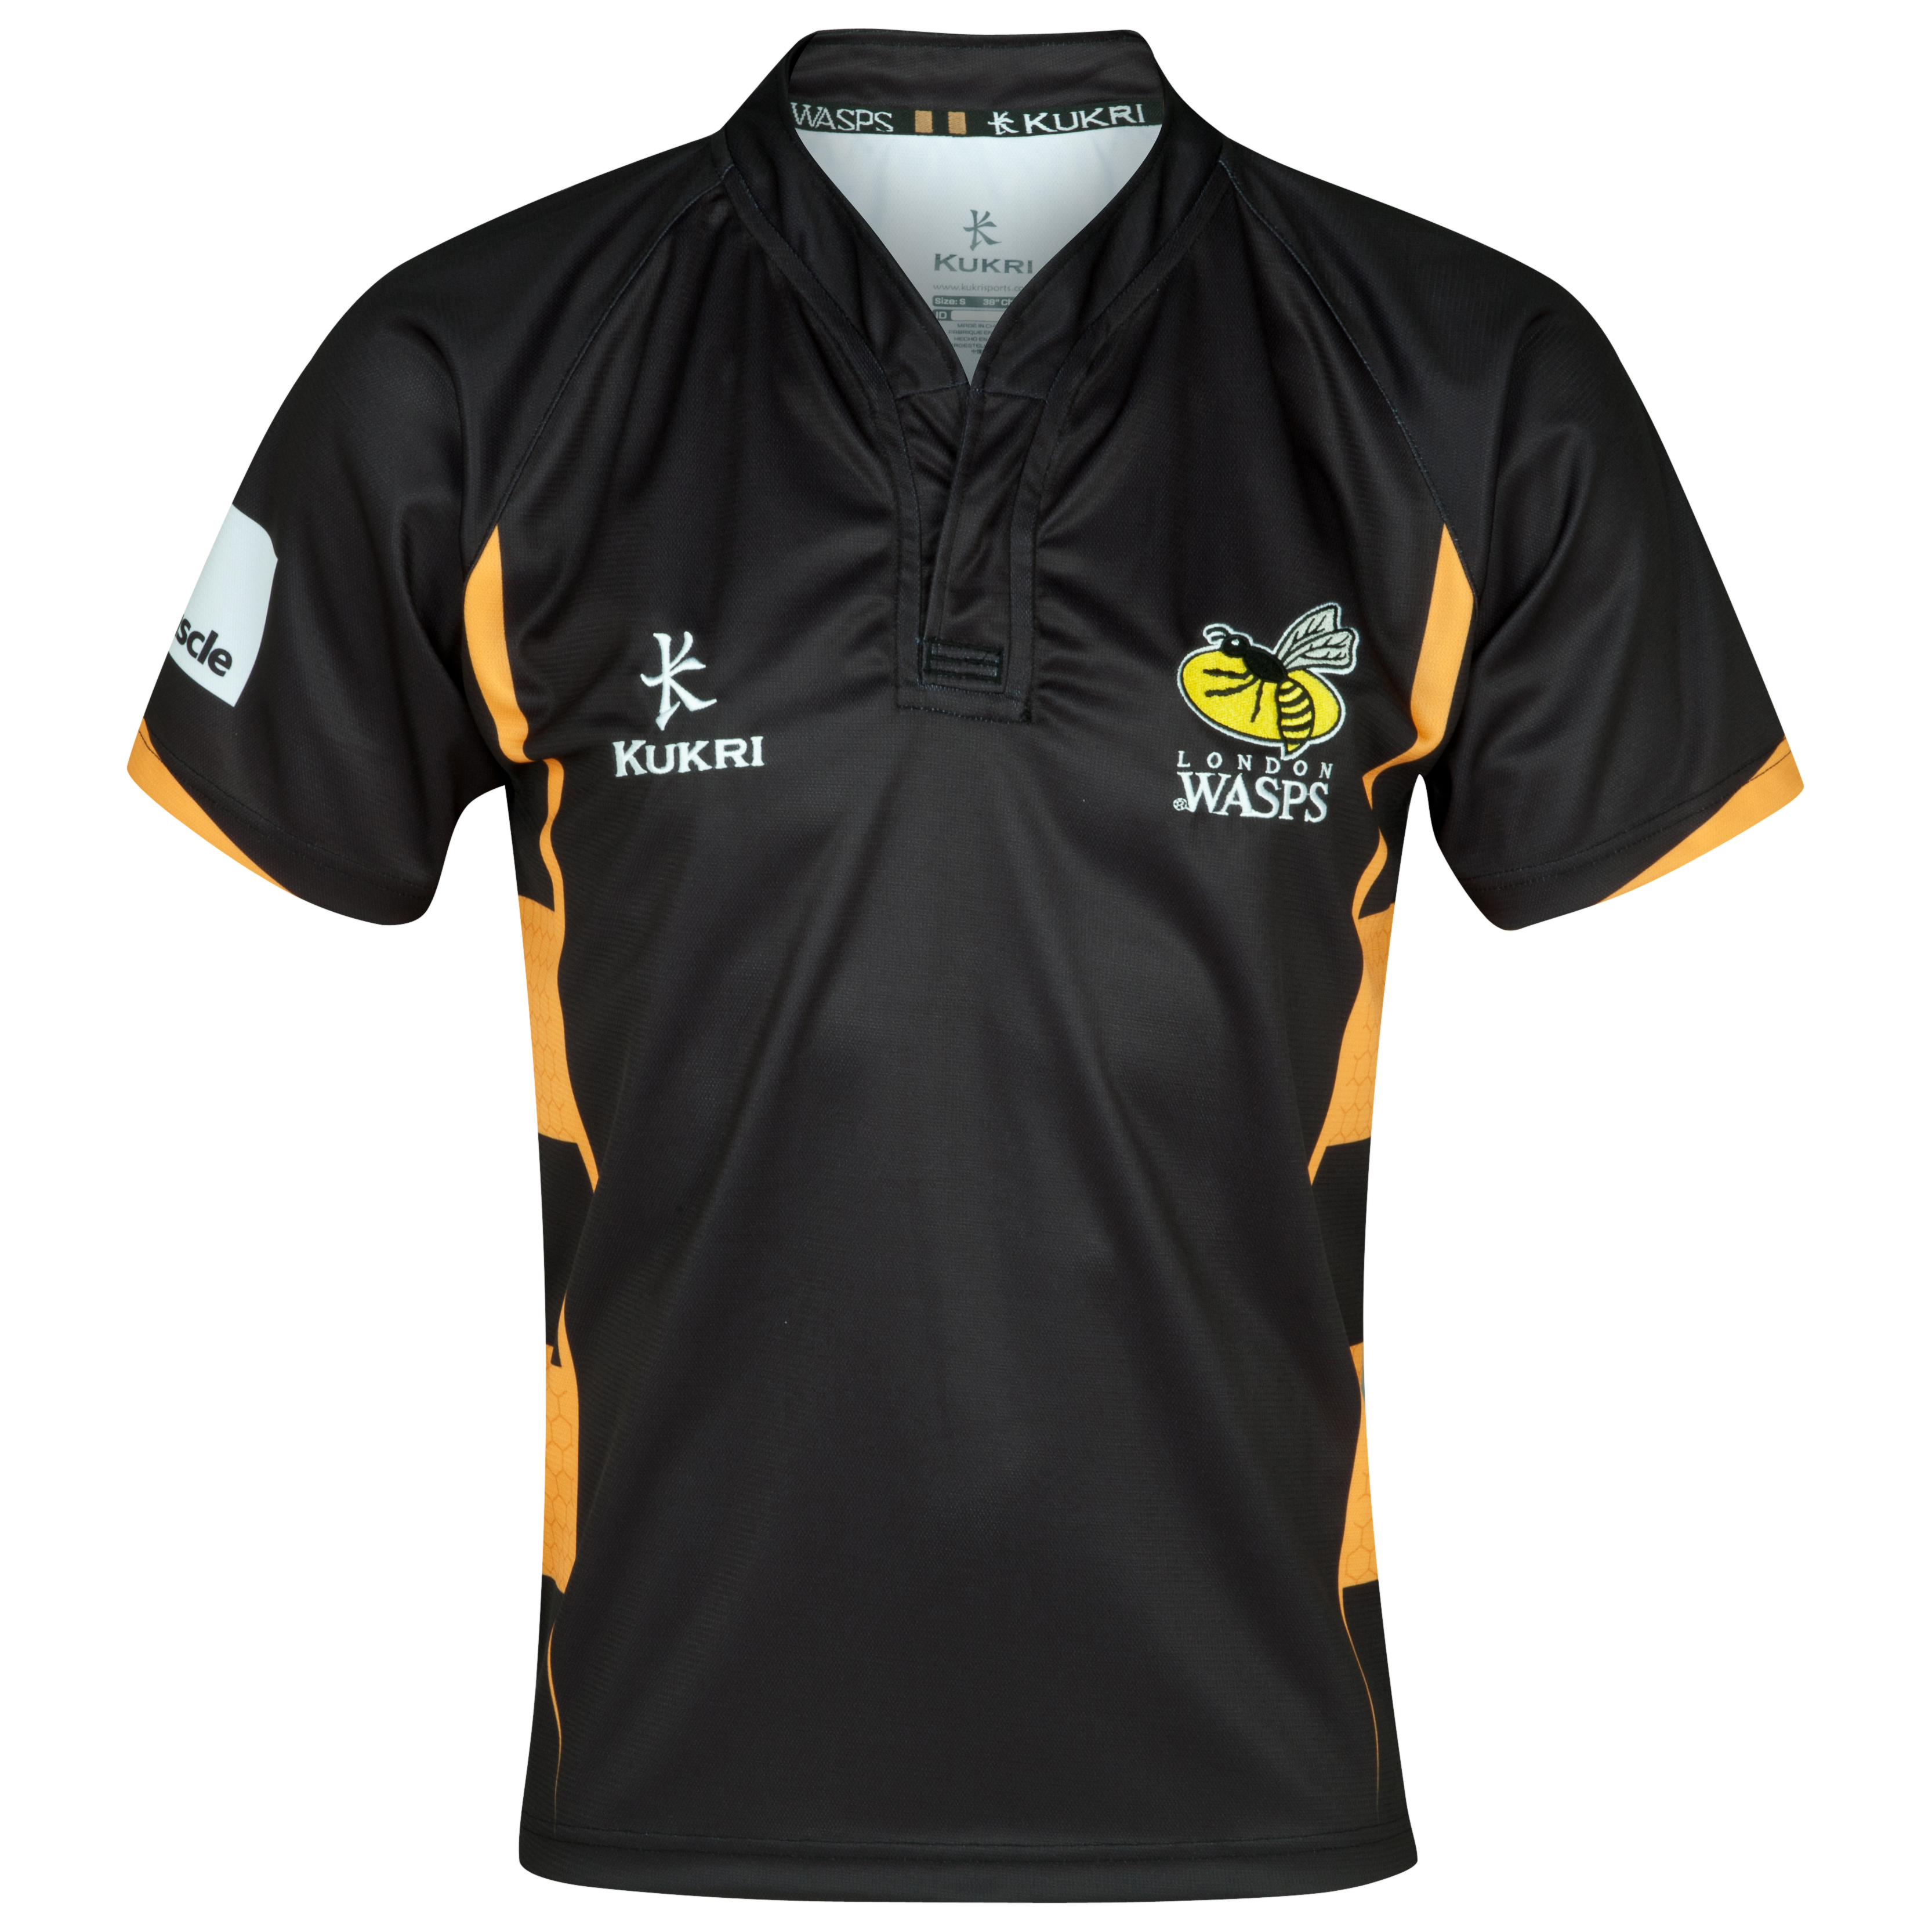 Wasps Home Shirt 2012/13